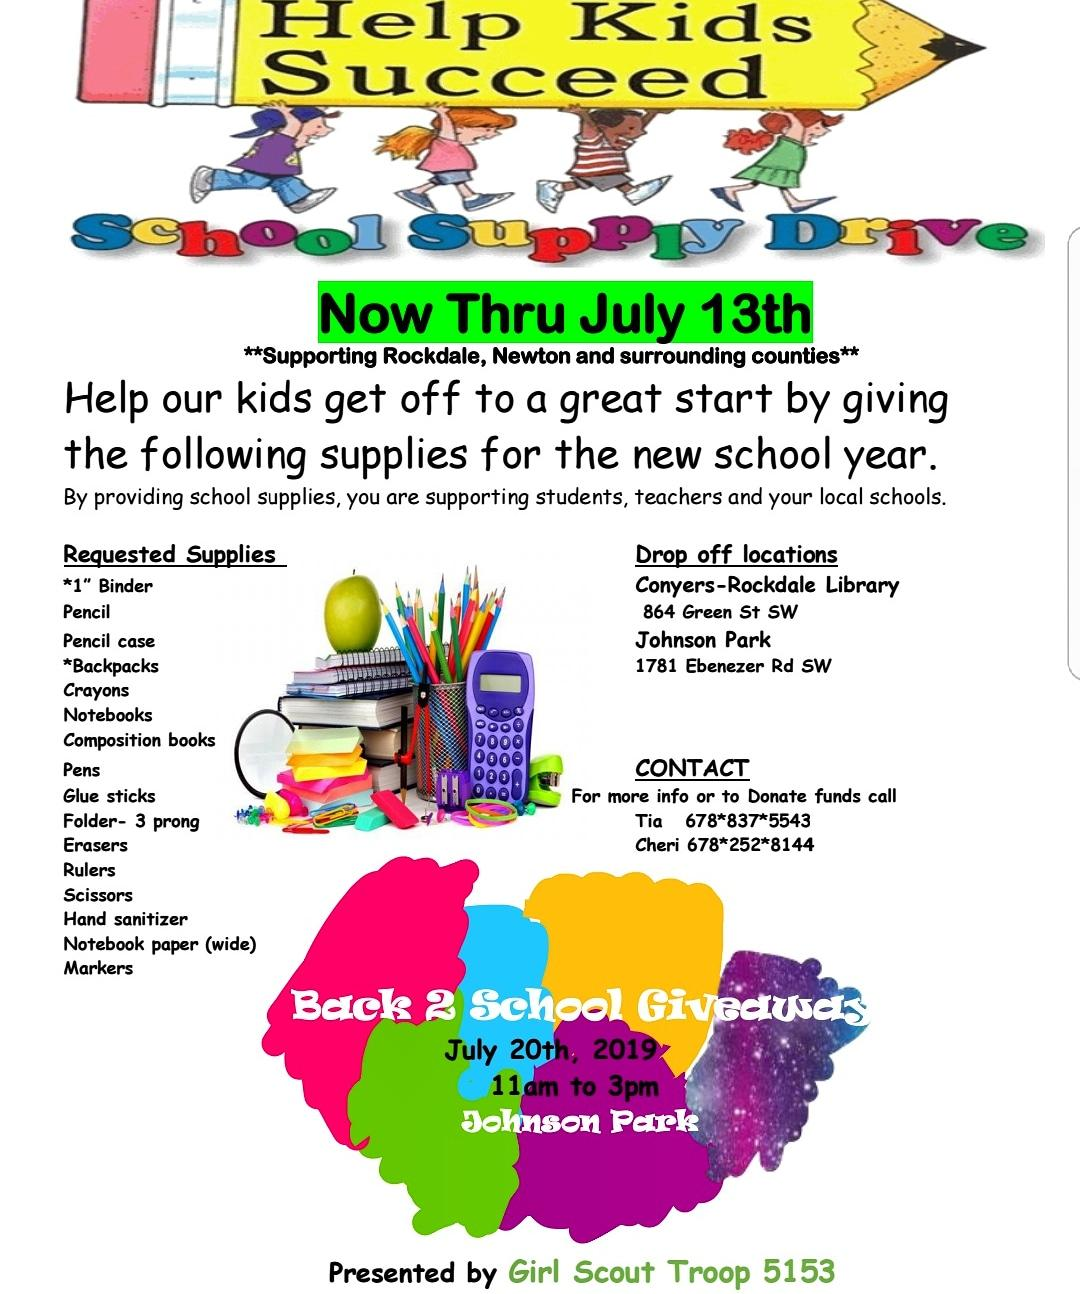 PLEASE DONATE SUPPLIES TO 2386 CLOWER ST. SUITE C-214 SNELLVILLE, GA 30078  ALL DONATIONS GO TO THE GIRL SCOUT TROOPS IN ROCKDALE COUNTY *DONATIONS ARE DUE JULY 13TH*  AND OR Paypal.me/Creatingourfutureinc